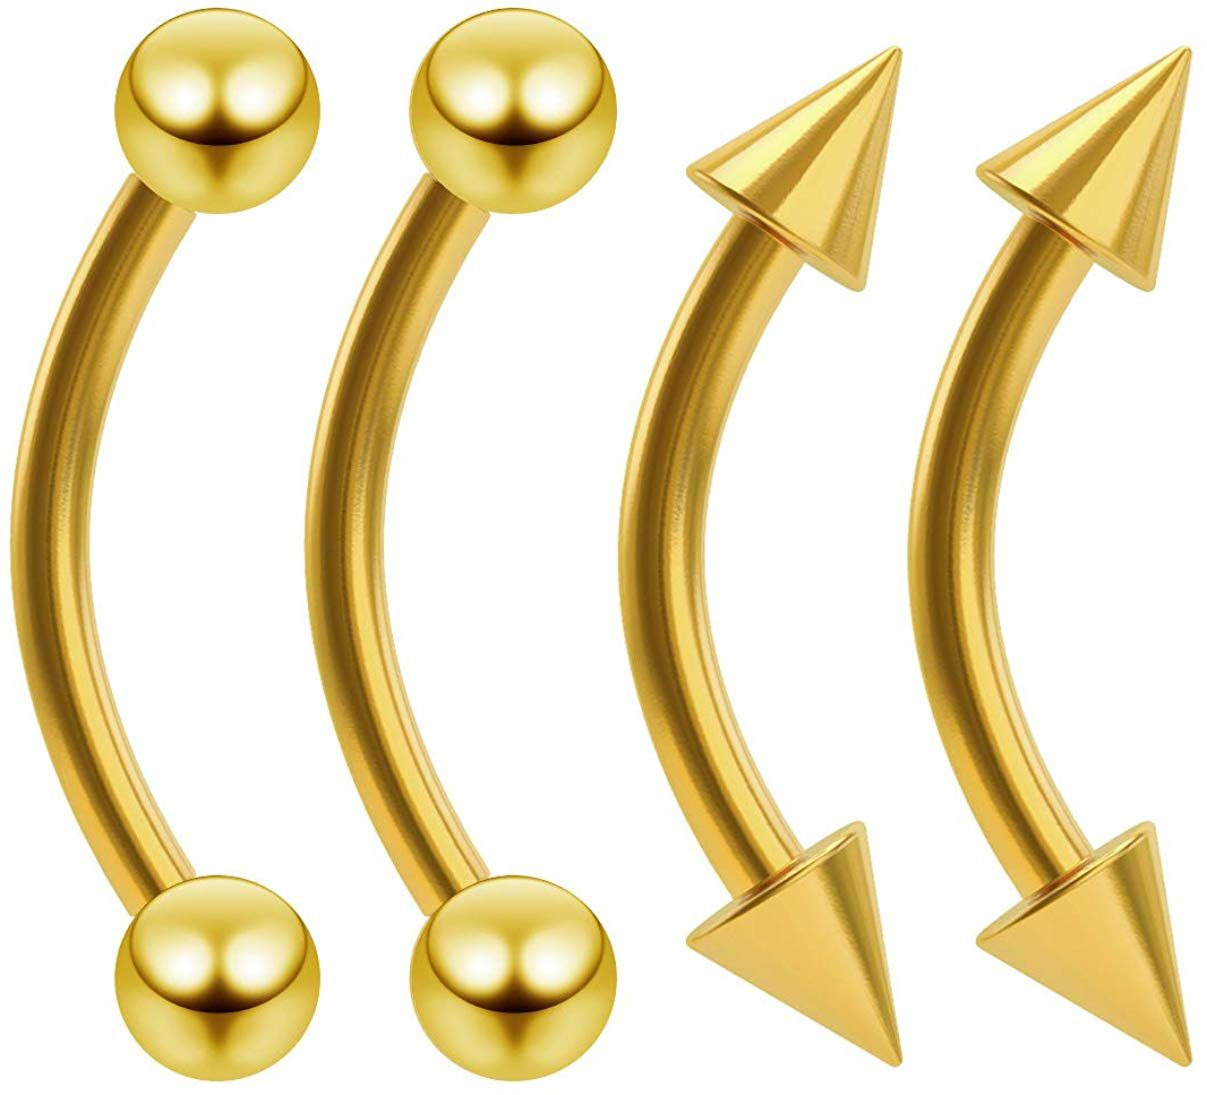 4pc Colorful Surgical Steel Eyebrow Ring Barbell Cone Curved Bar Tragus Piercing